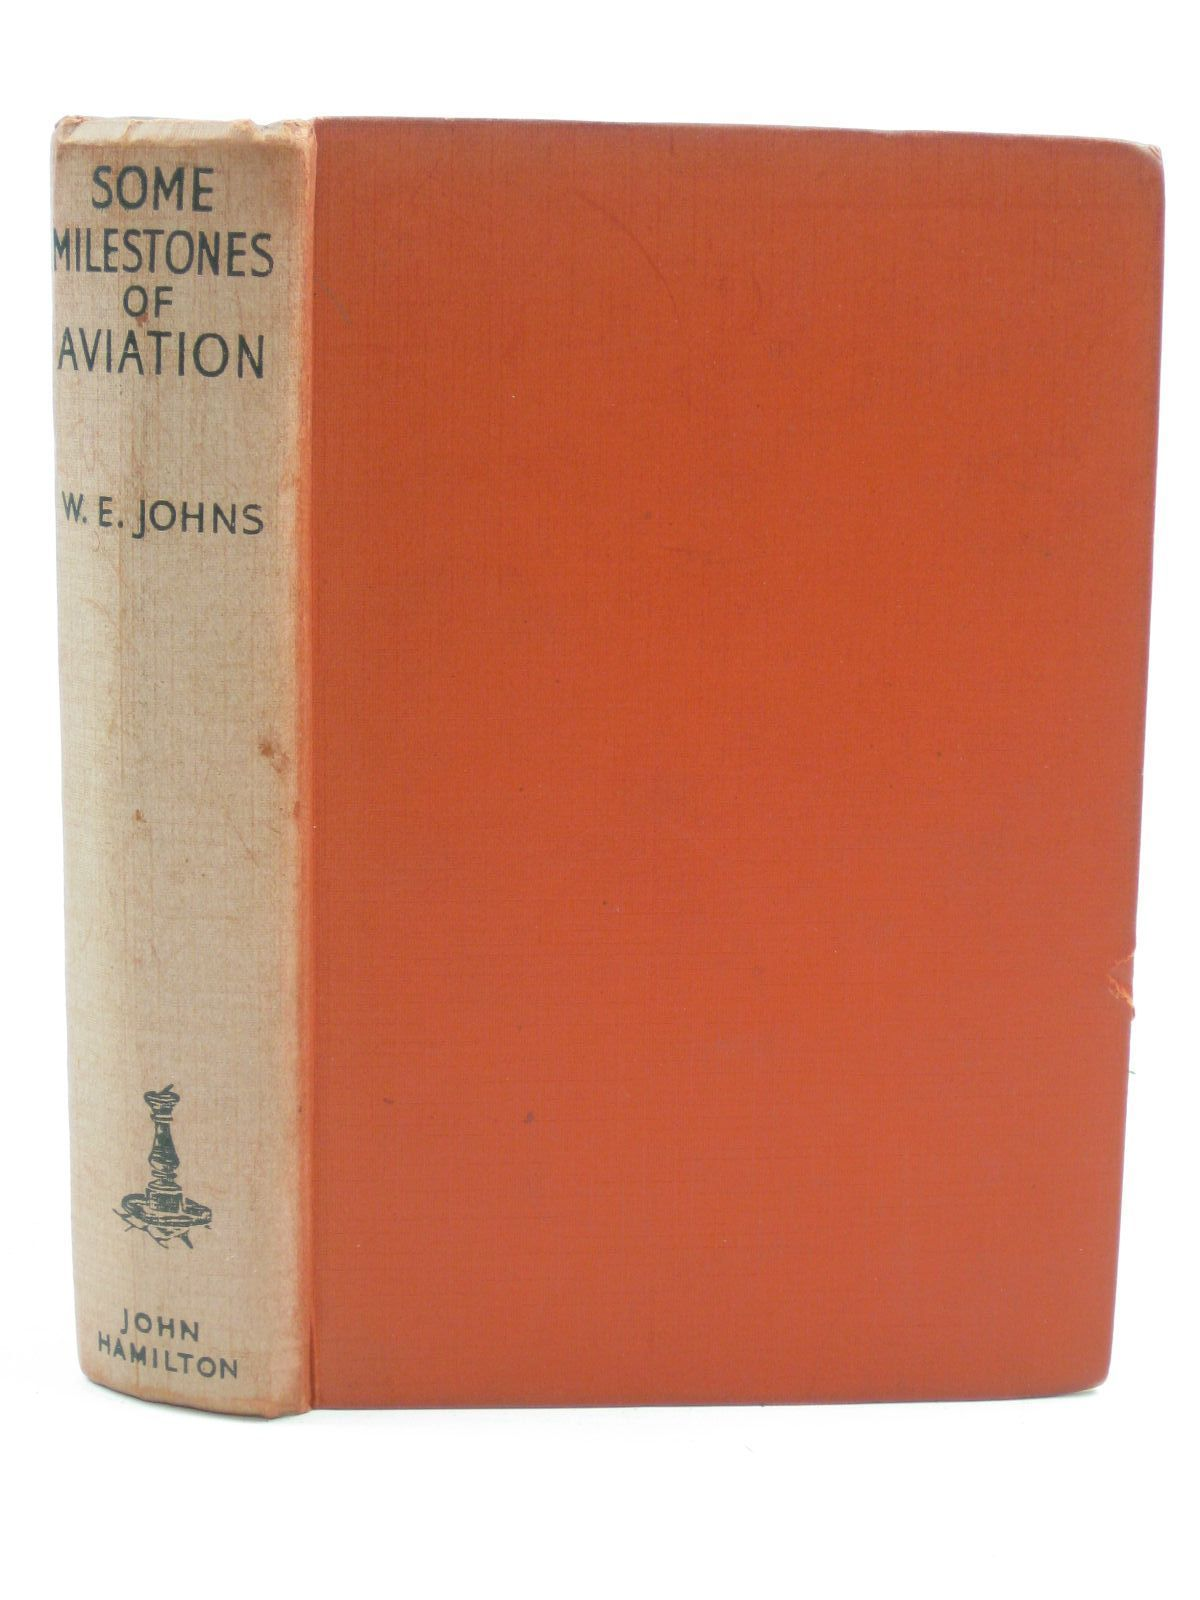 Photo of SOME MILESTONES IN AVIATION written by Johns, W.E. published by John Hamilton (STOCK CODE: 1406767)  for sale by Stella & Rose's Books